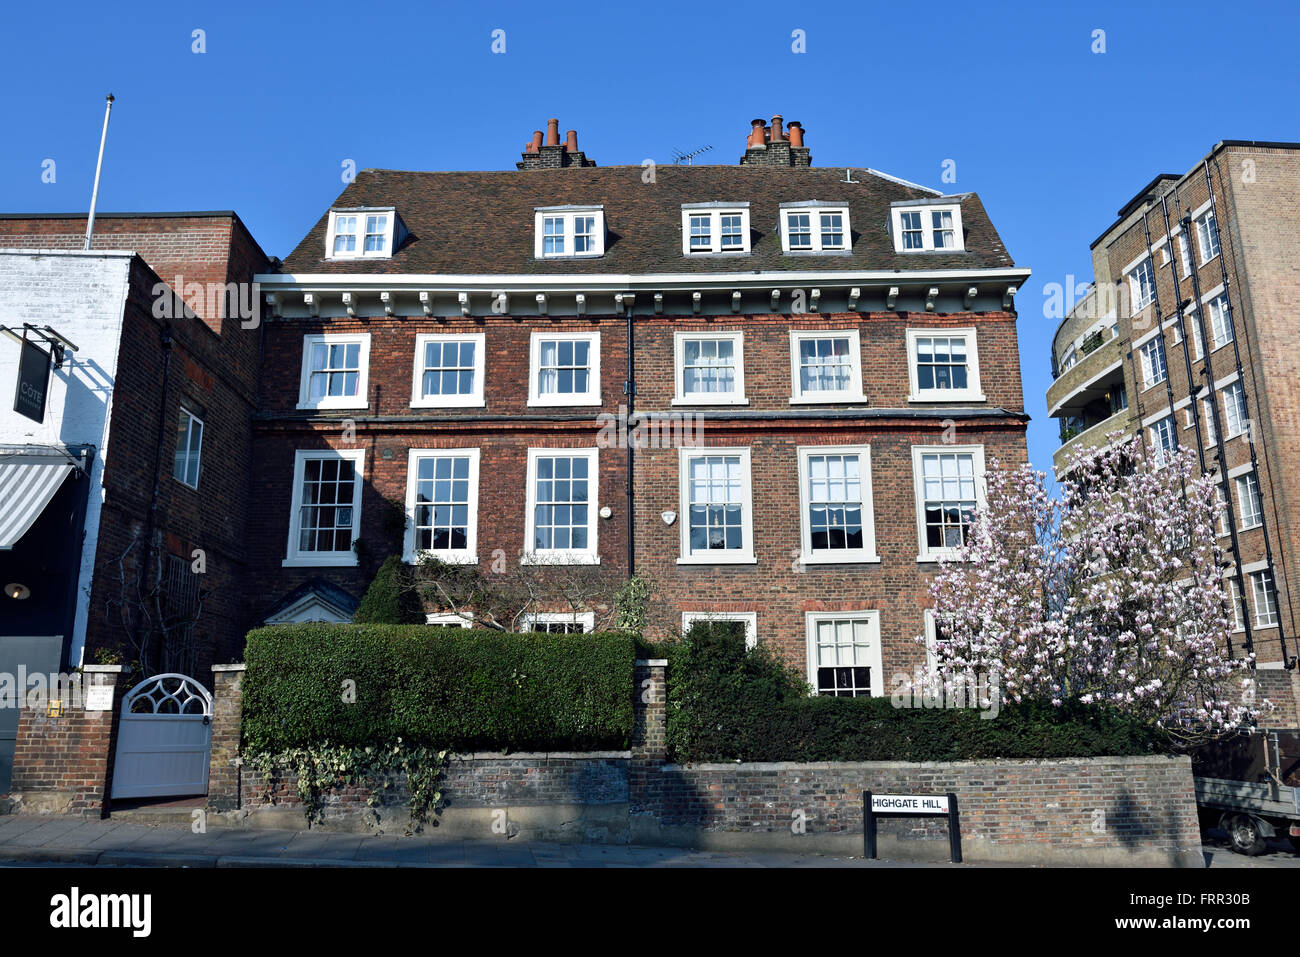 Two Georgian houses on Highgate Hill London England Britain UK Stock Photo